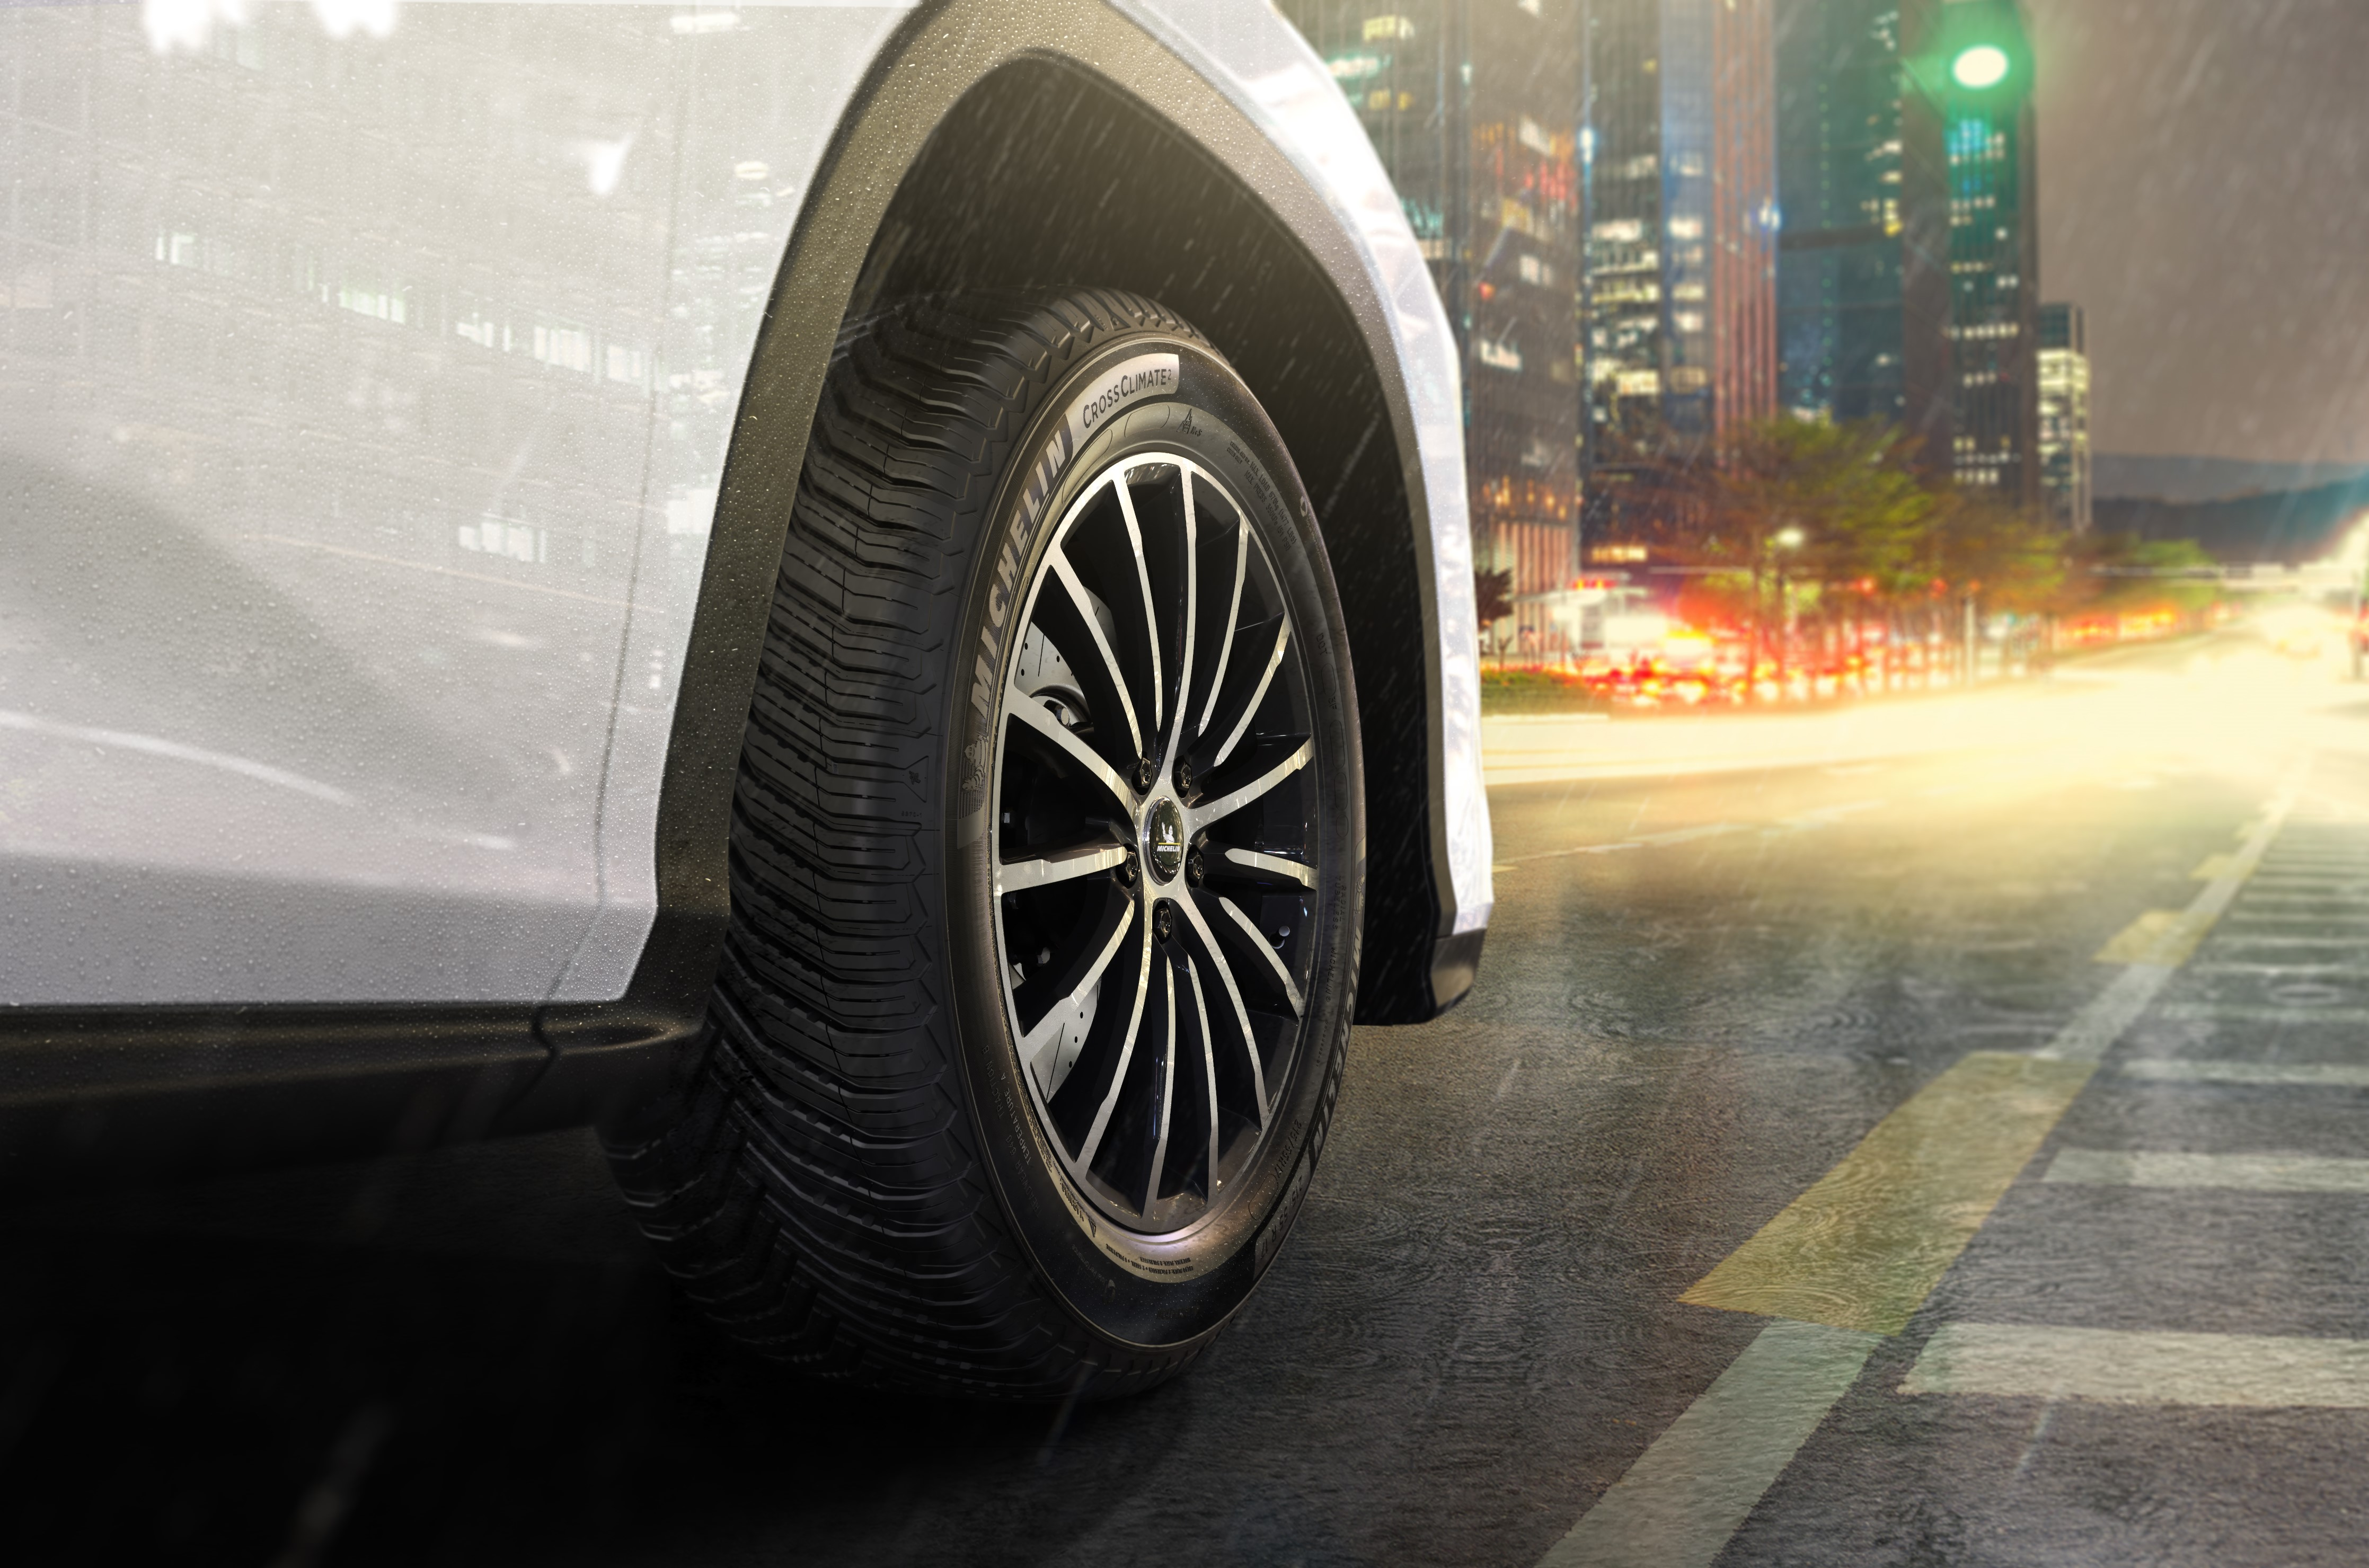 Michelin Previews Its 'Most Advanced' Passenger Tire